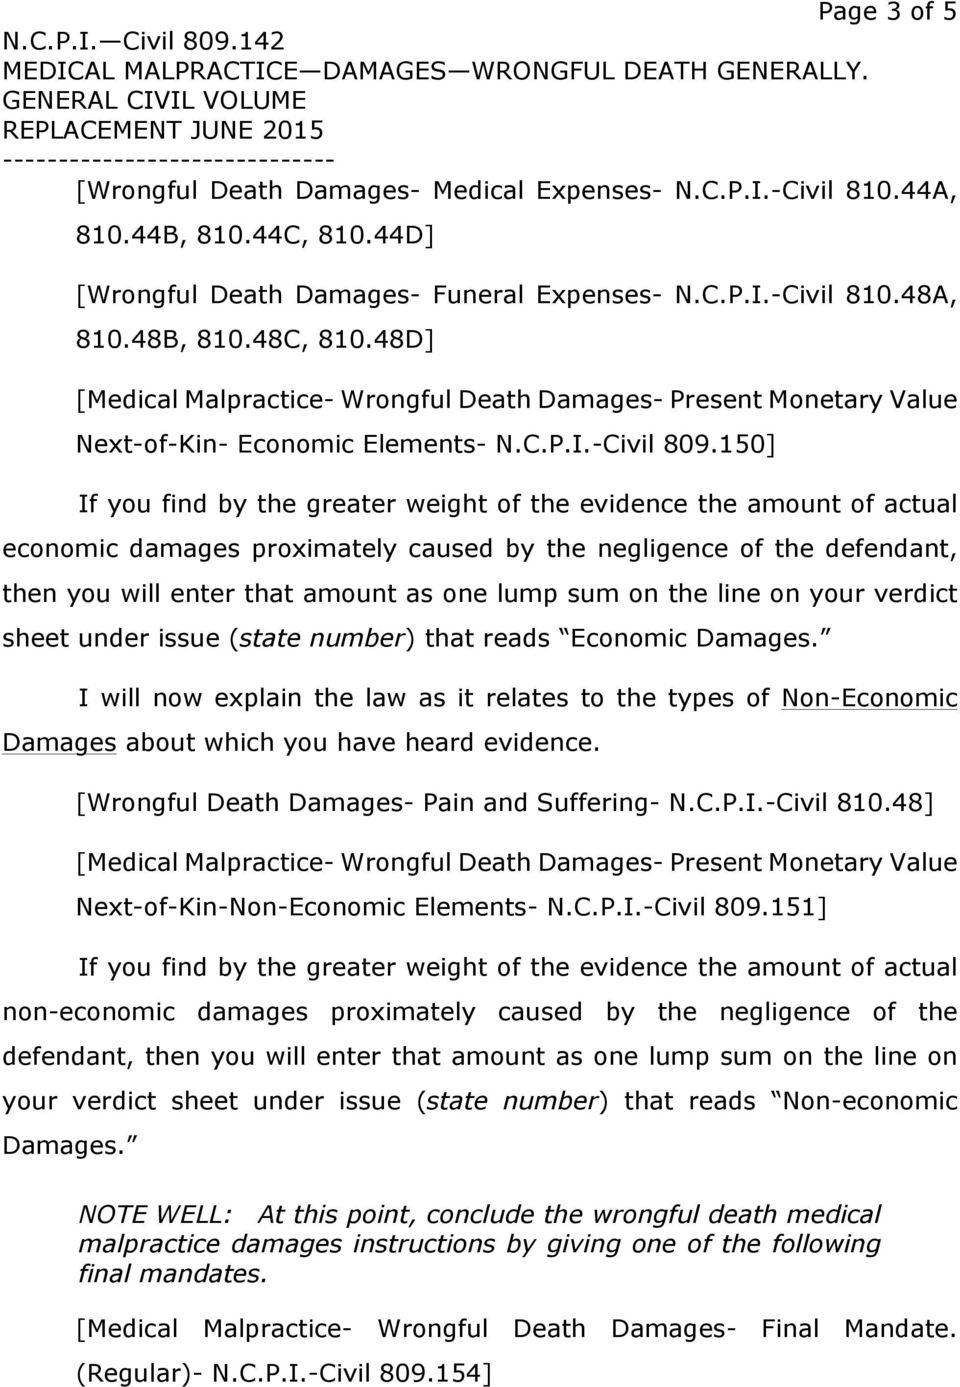 150] If you find by the greater weight of the evidence the amount of actual economic damages proximately caused by the negligence of the defendant, then you will enter that amount as one lump sum on